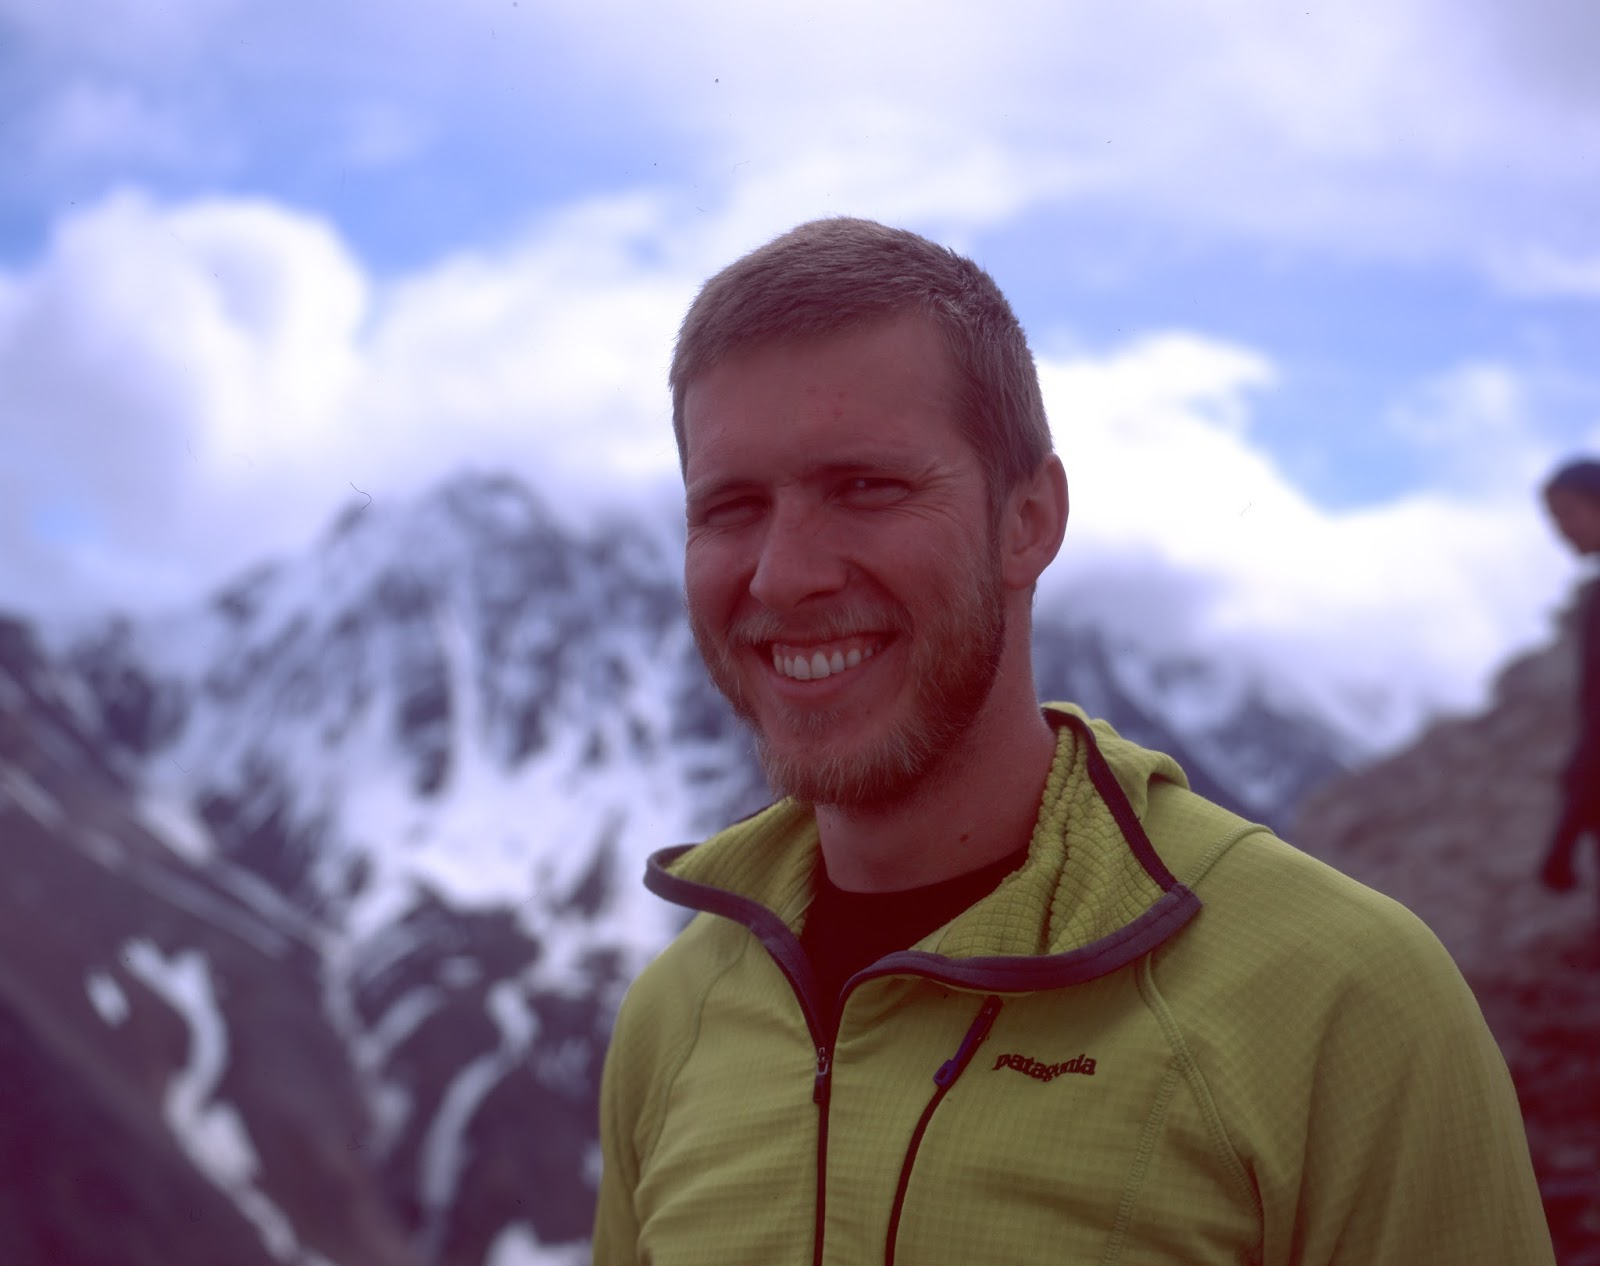 Patrick Kelly - Patrick is the Director of Education at Stokes Nature Center and your naturalist guide! He is a seasoned naturalist specializing in flora, ecology, and human history. Prior to working at Stokes, he spent 5 years as a naturalist guide in Alaska including several seasons as the lead naturalist at the prestigious Denali Education Center in Denali, AK. He has a love of taking people outside and discovering new places. He is also an adjunct professor at Alaska Pacific University and Utah State University specializing in experiential and environmental education, and science communication. He is a Wilderness First Responder.